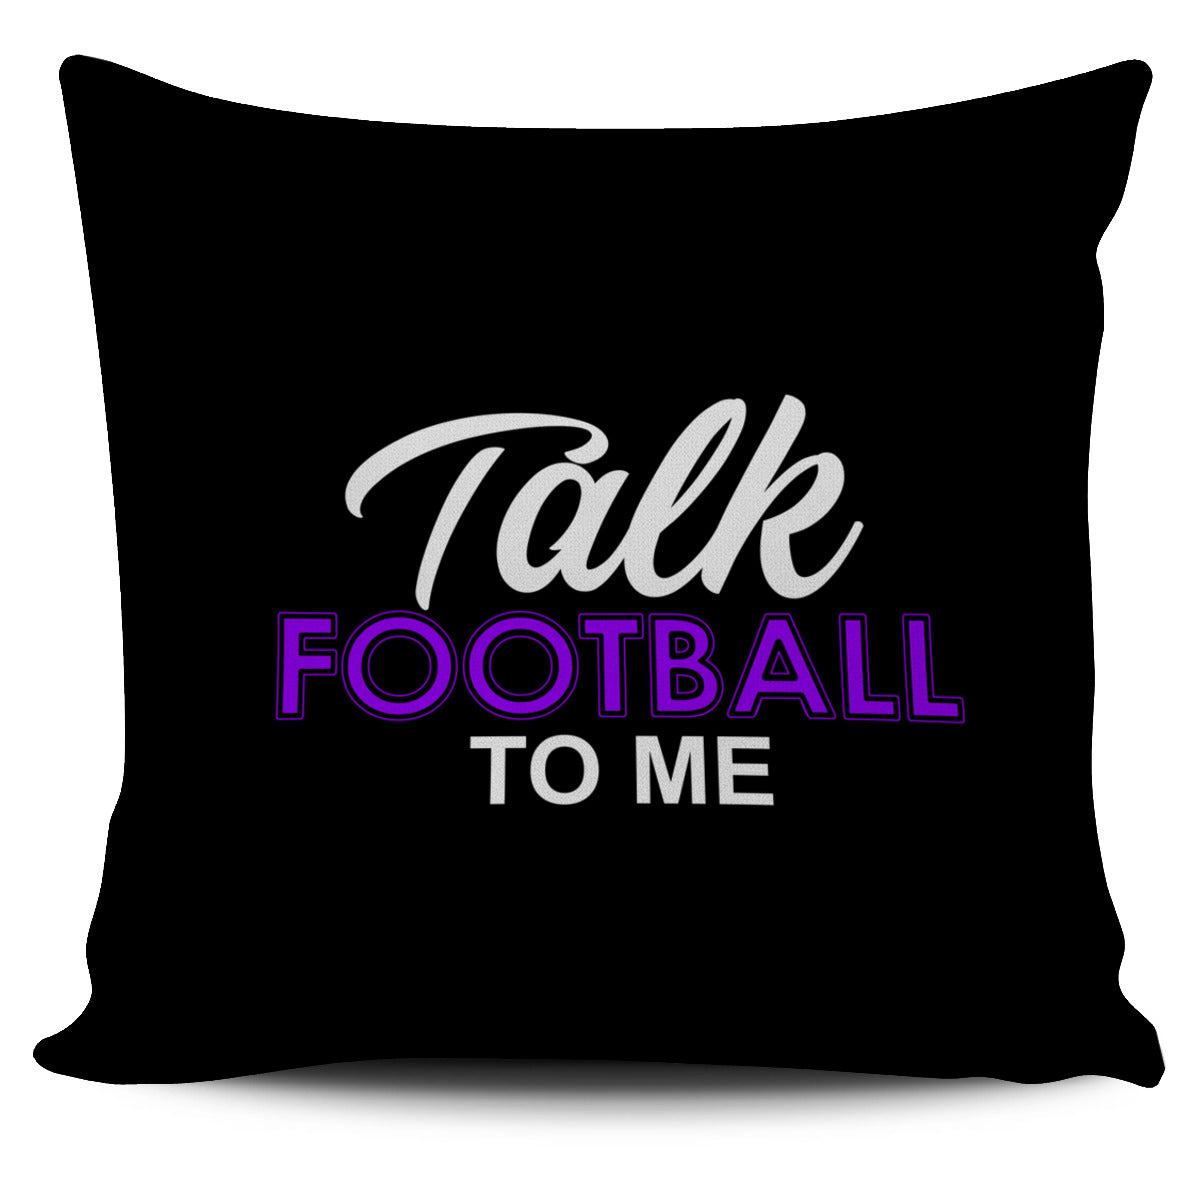 Talk Football To Me Pillow Cover AL84